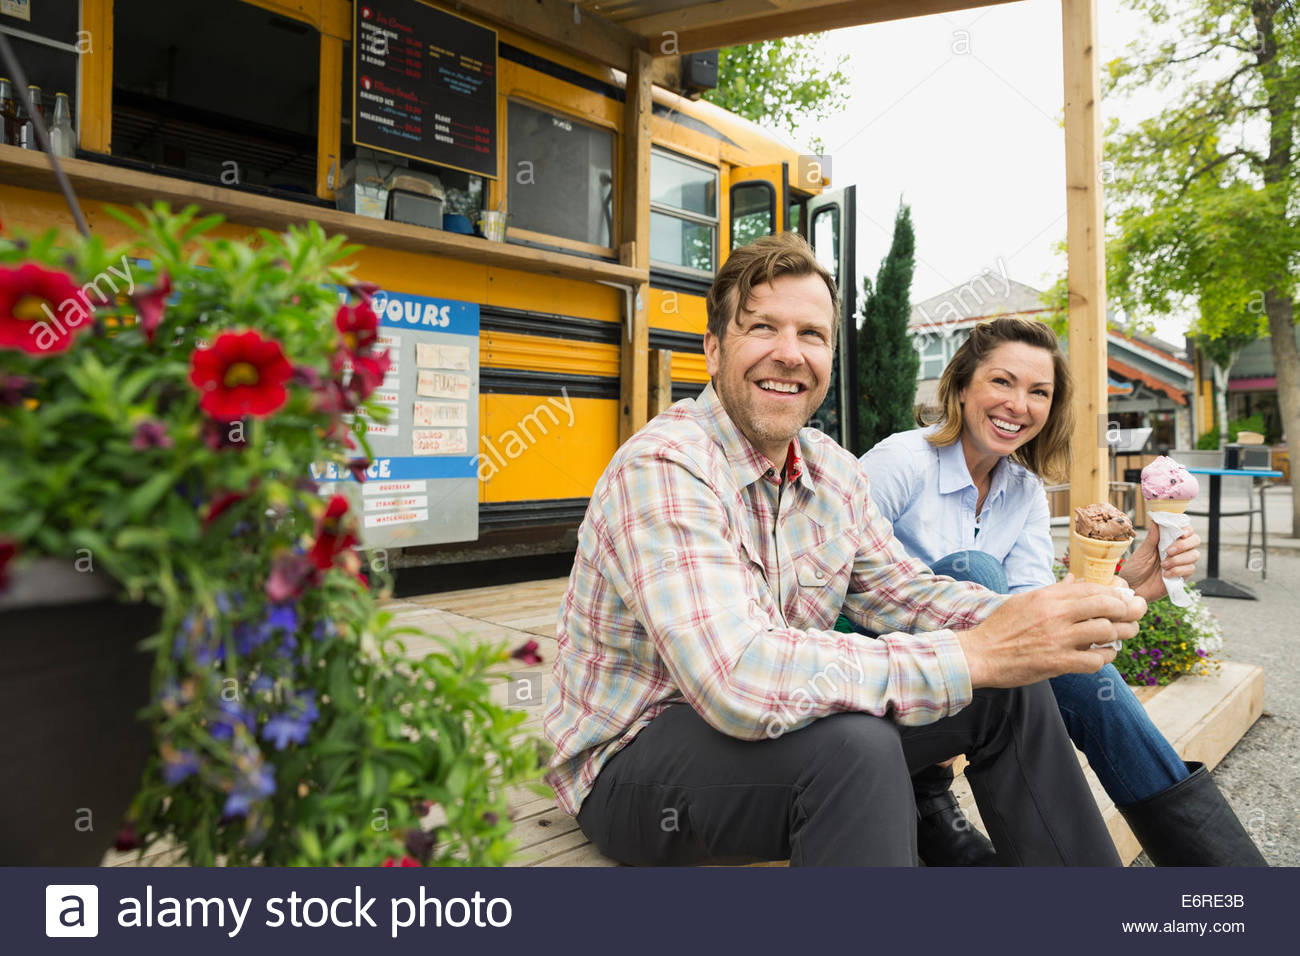 Couple eating ice cream au camion alimentaire Photo Stock